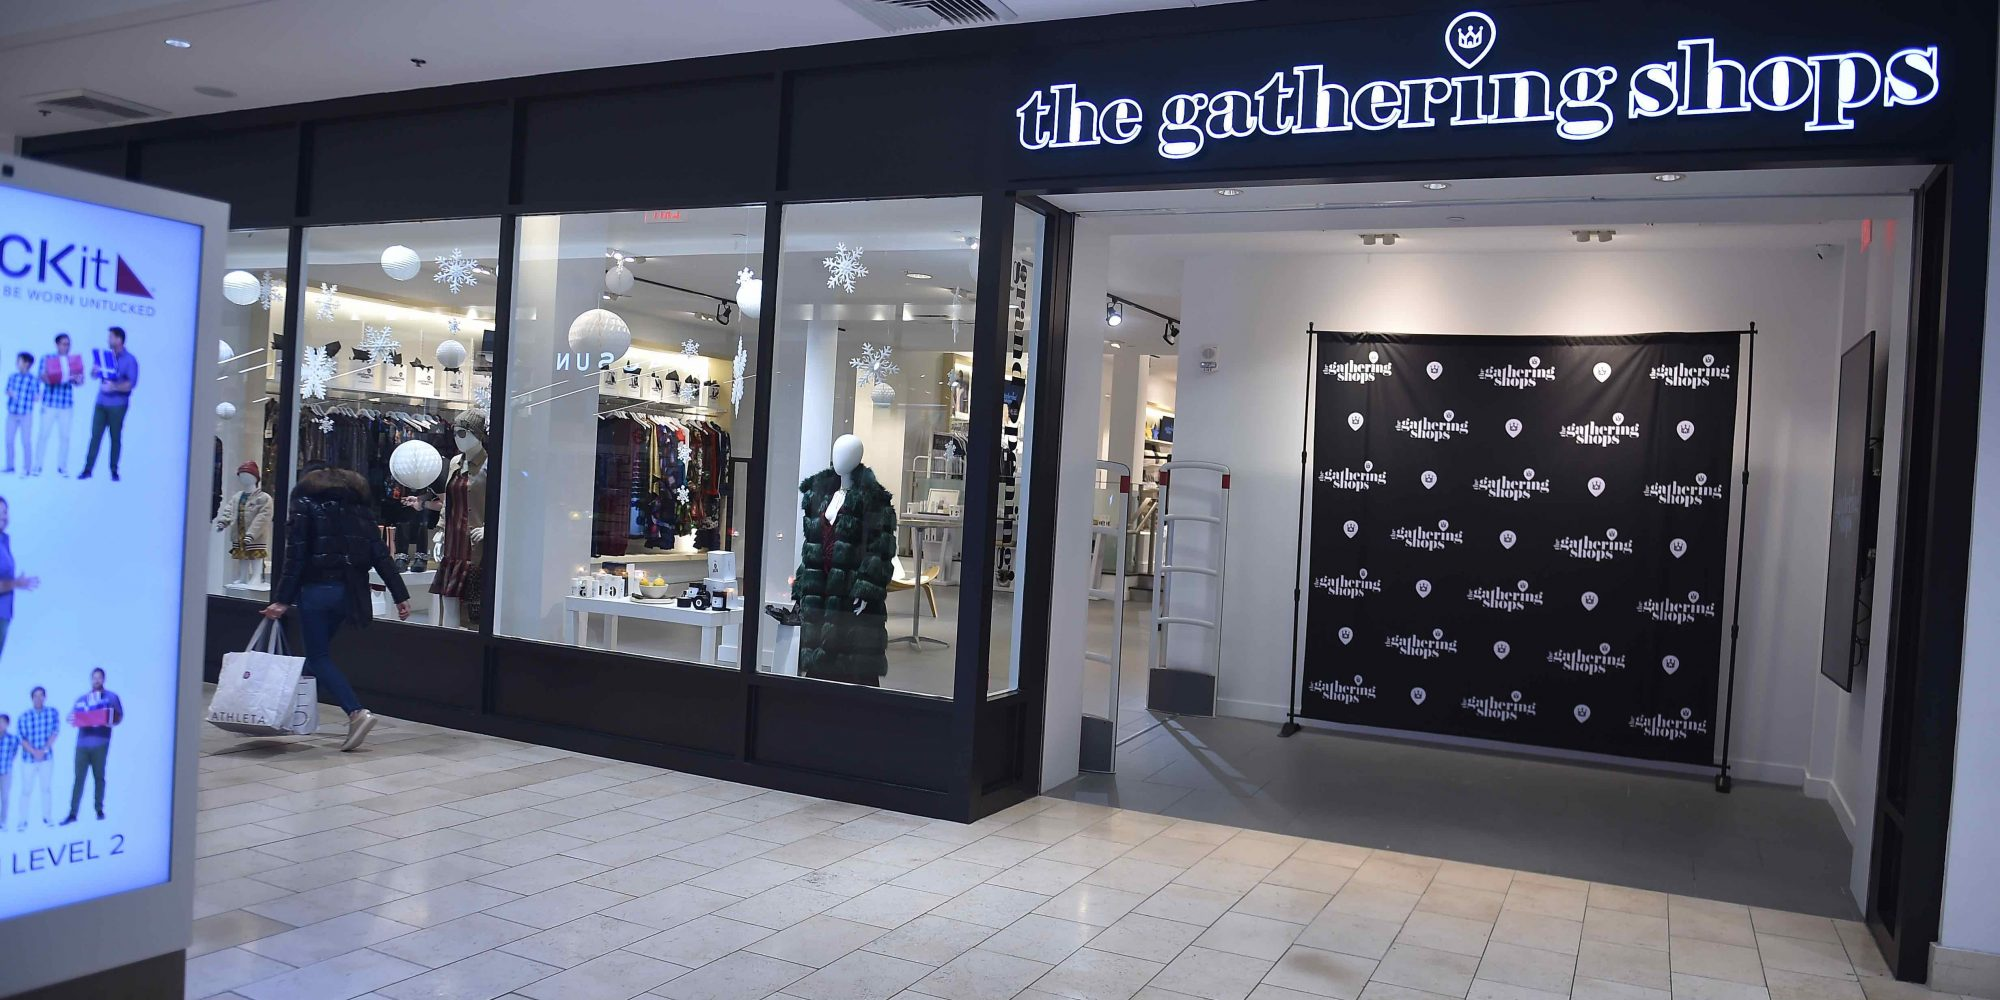 The Gathering Shops Provides A Retail Platform For Emerging Brands In A Busy Shopping Center